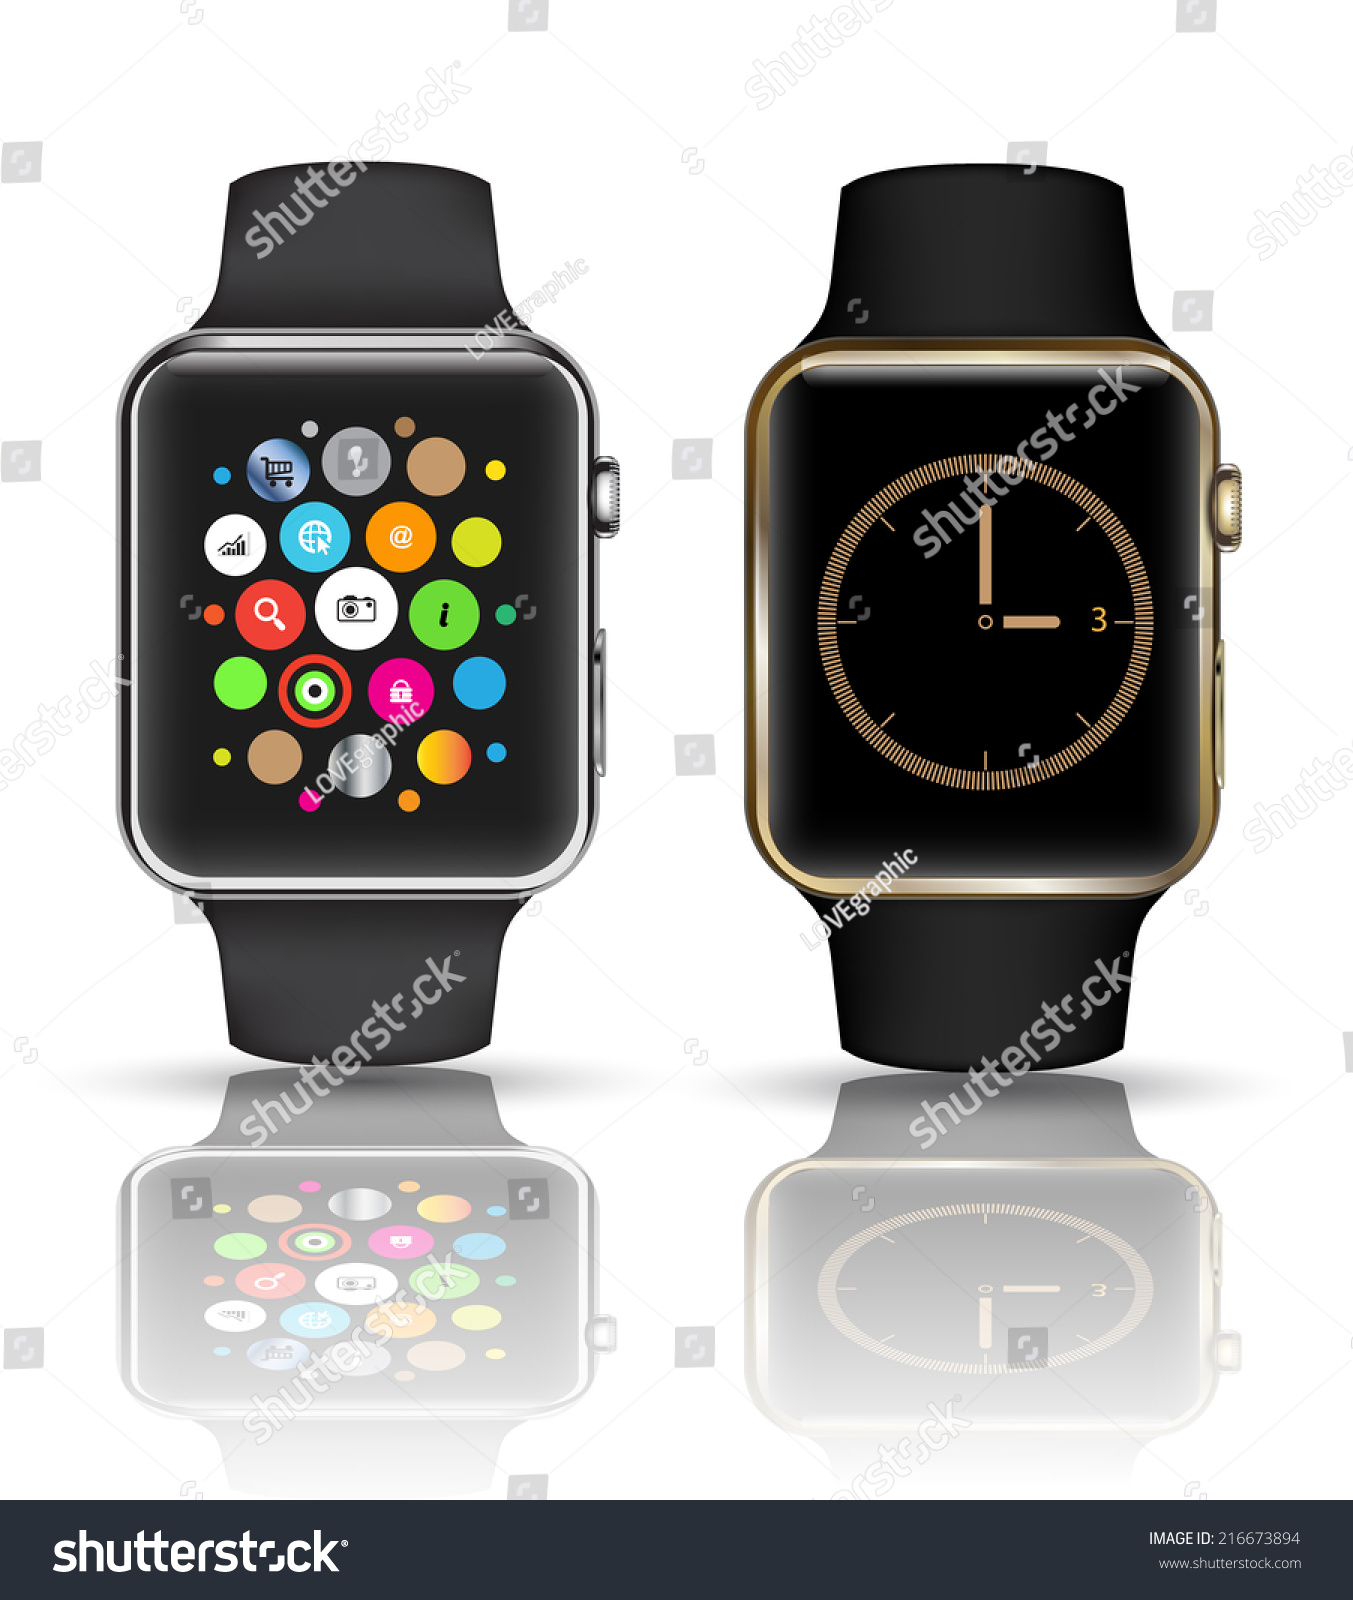 your smartwatch wired phone texting colorwristband solo black watches pp sony wrist twitter to facebook brings mobile